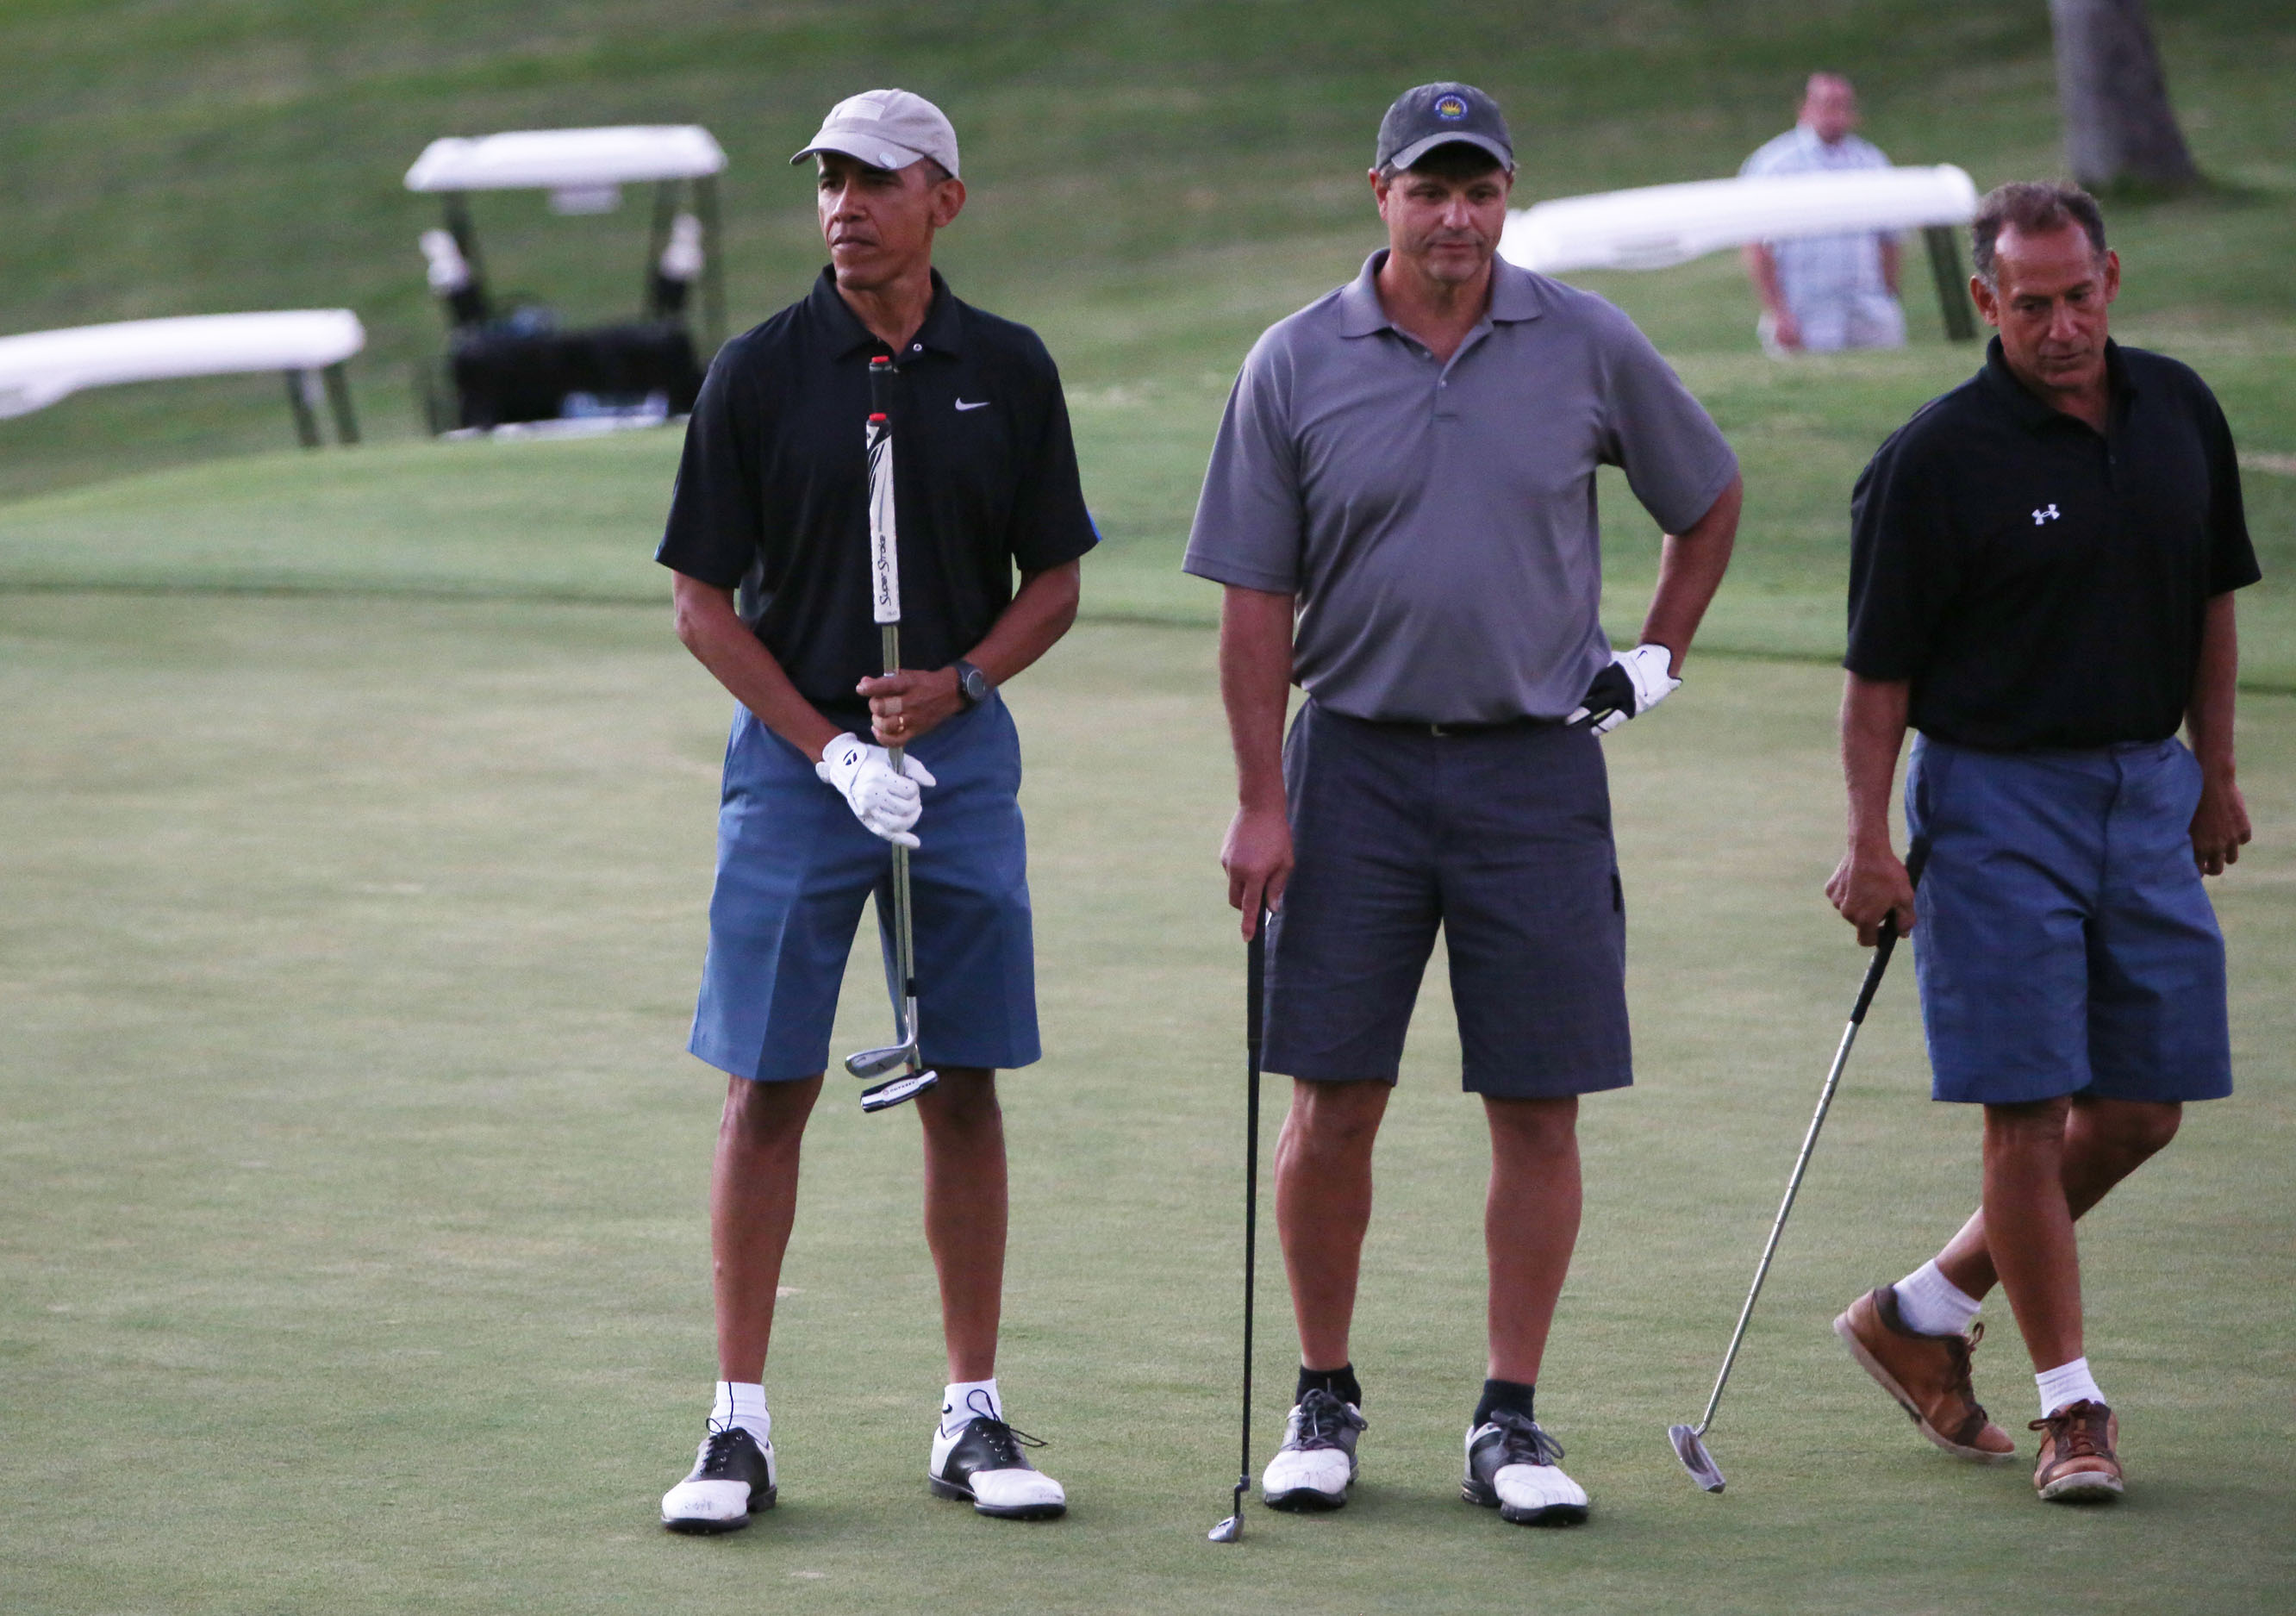 President Obama stands with Greg Orme and Bobby Titcomb on the 18th green.